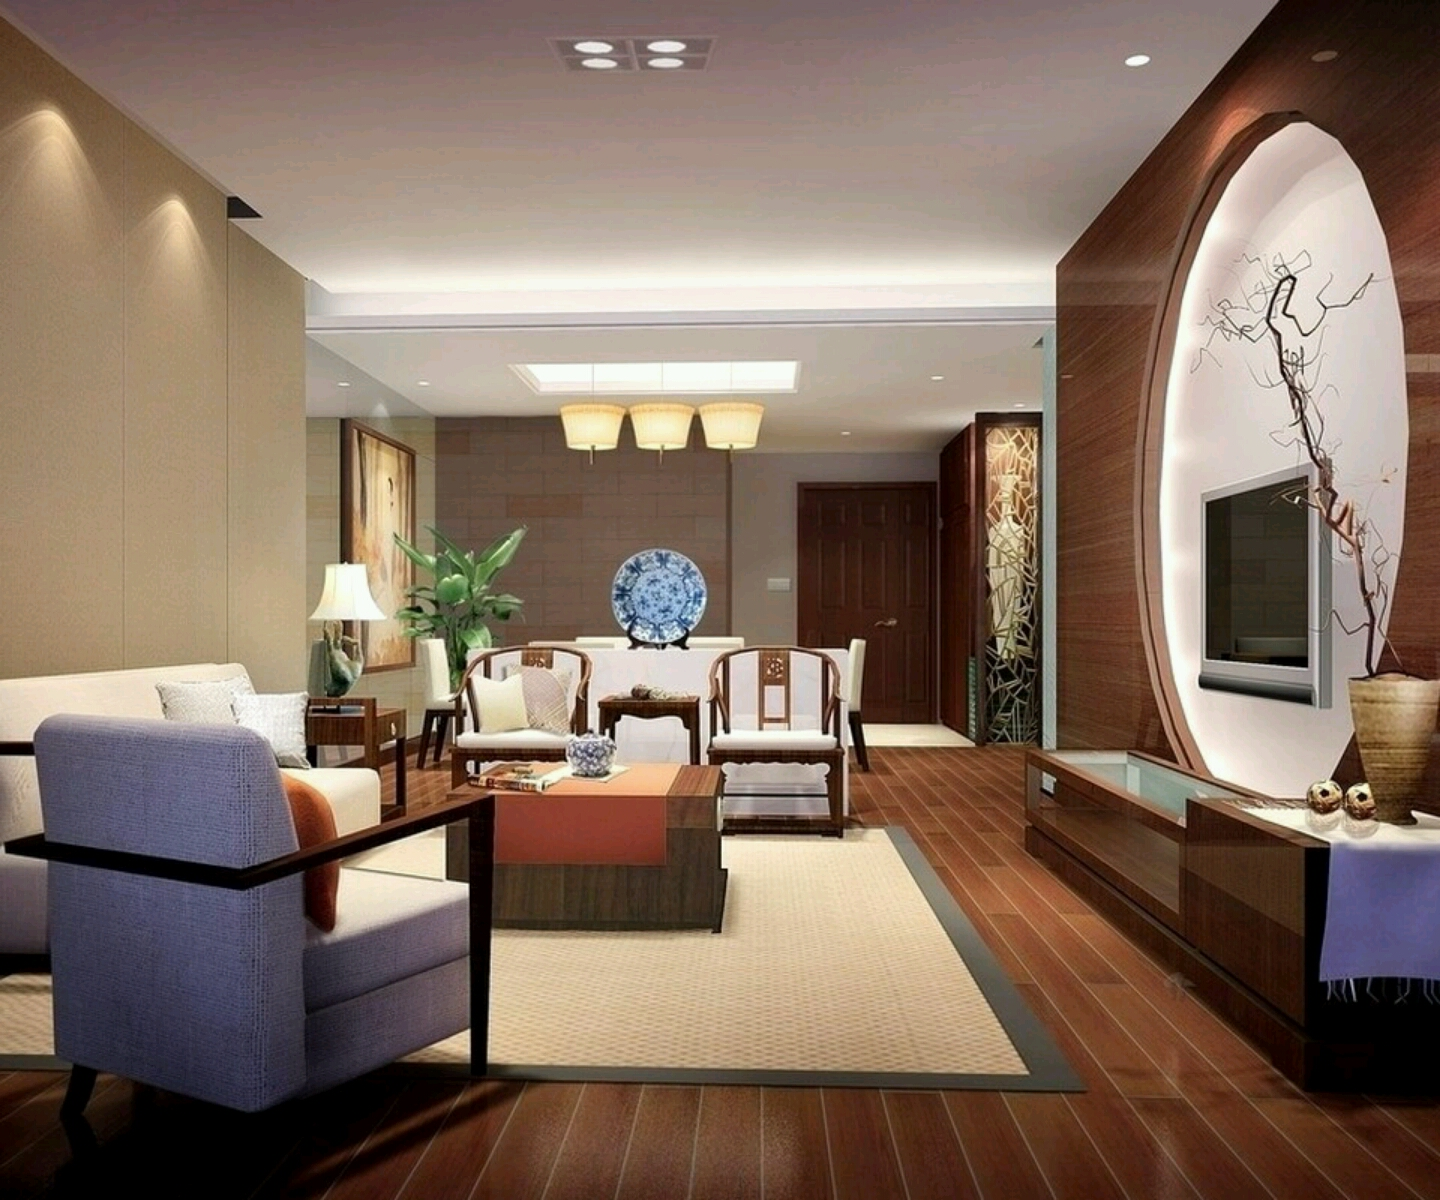 Luxury homes interior decoration living room designs ideas for Sitting room interior